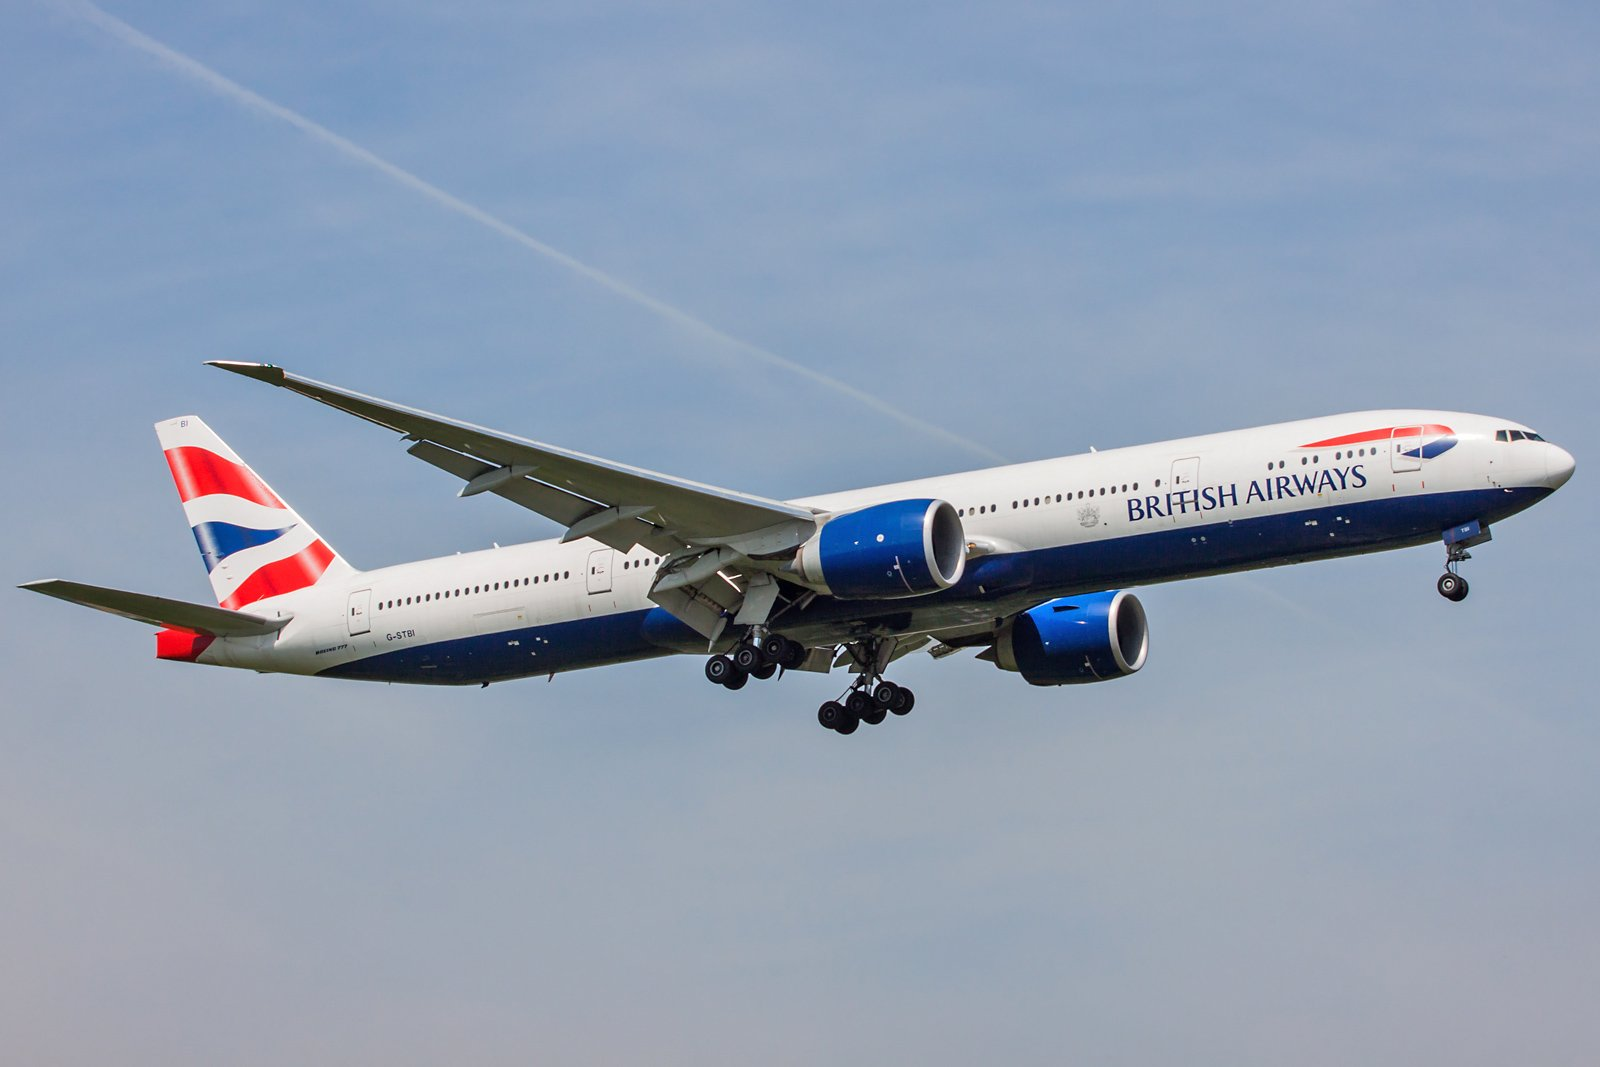 British Airways Boeing 777-336(ER) G-STBI